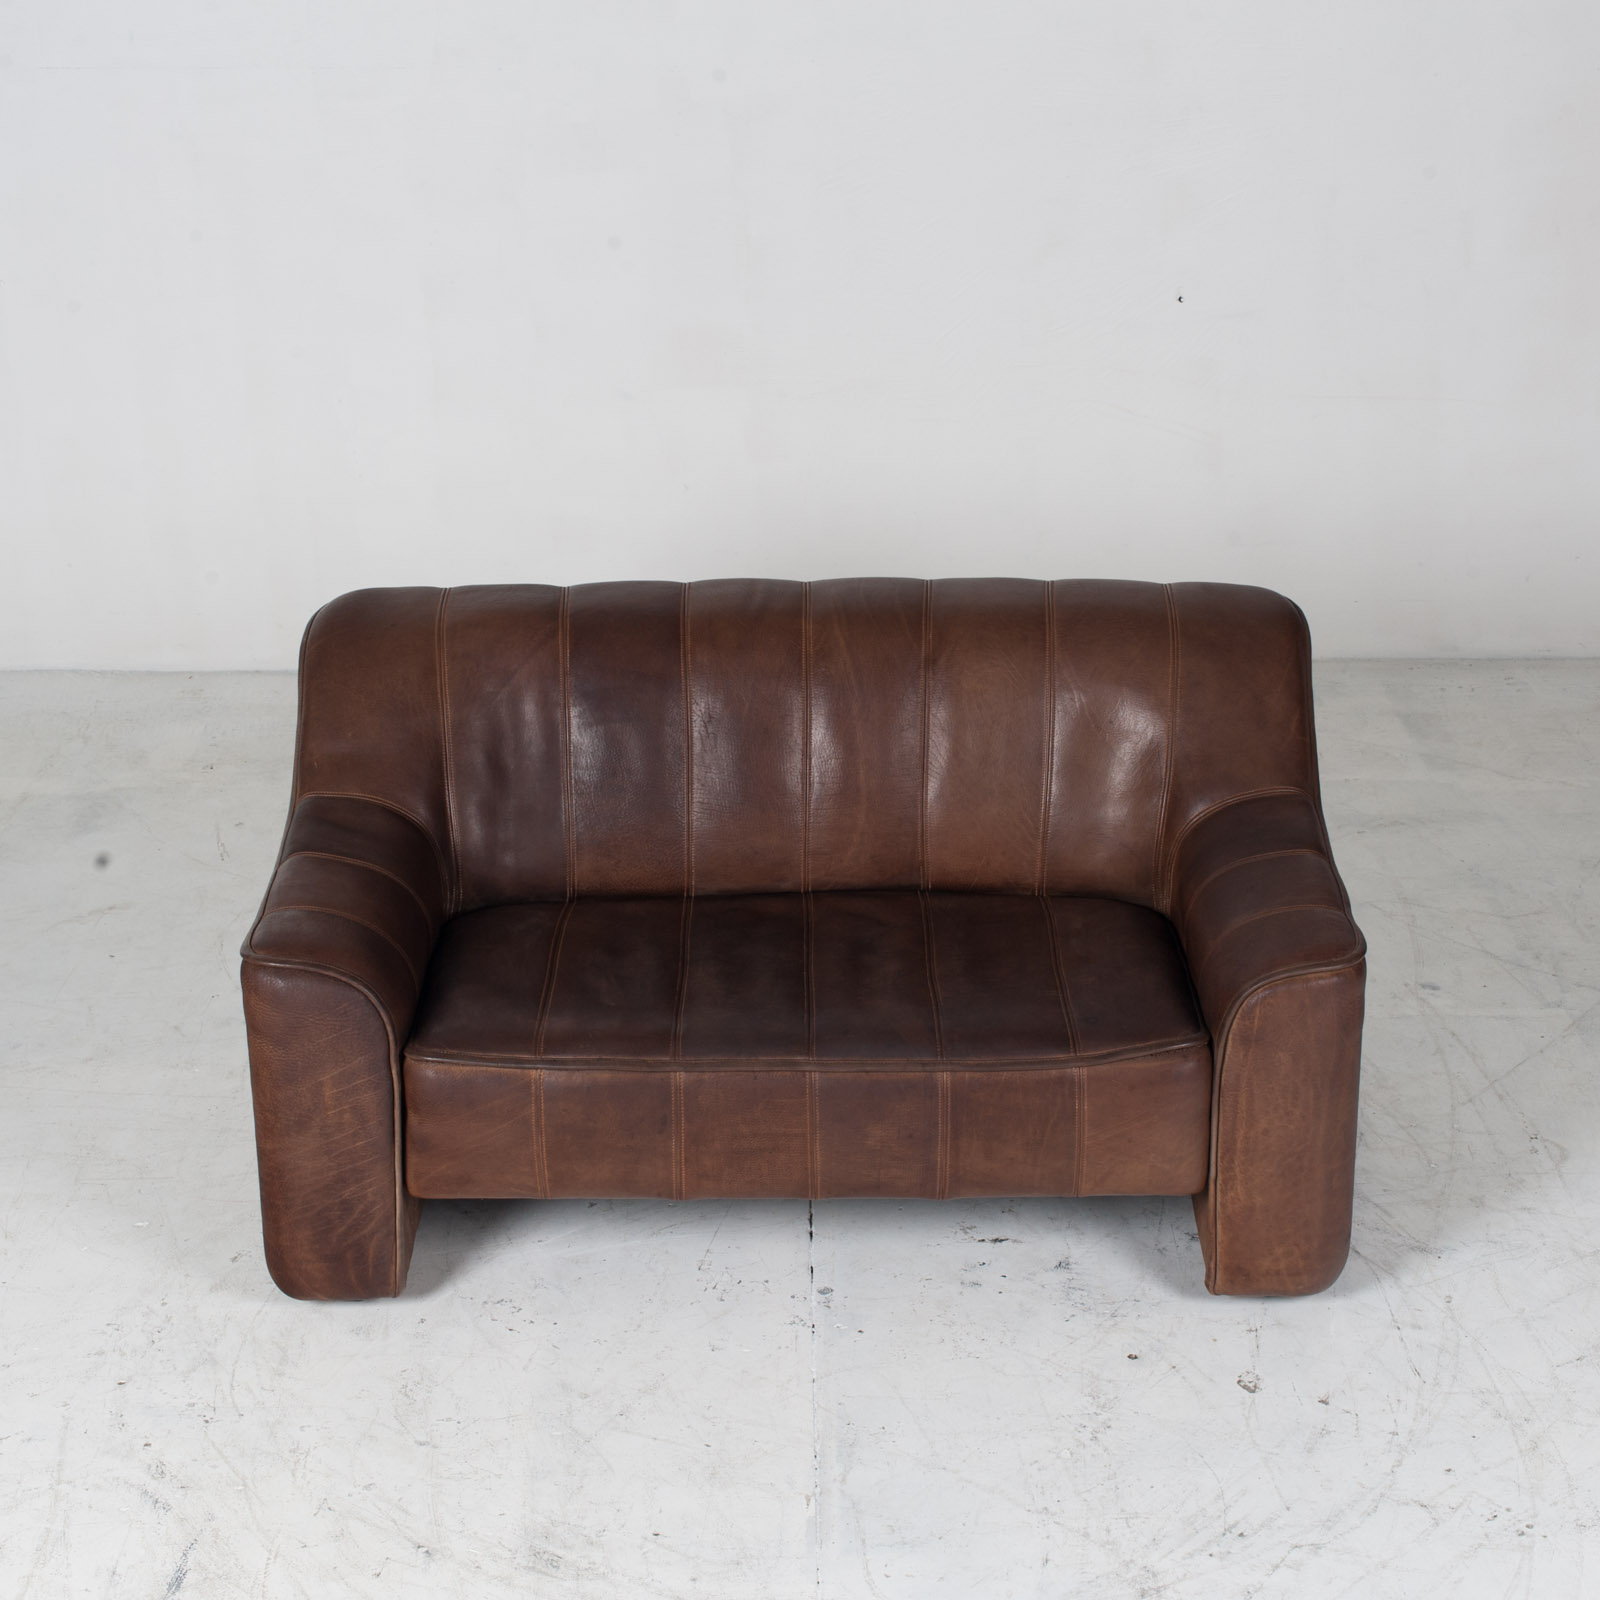 Model Ds 44 2 Seat Sofa In Buffalo Leather 1960s Switzerland 03